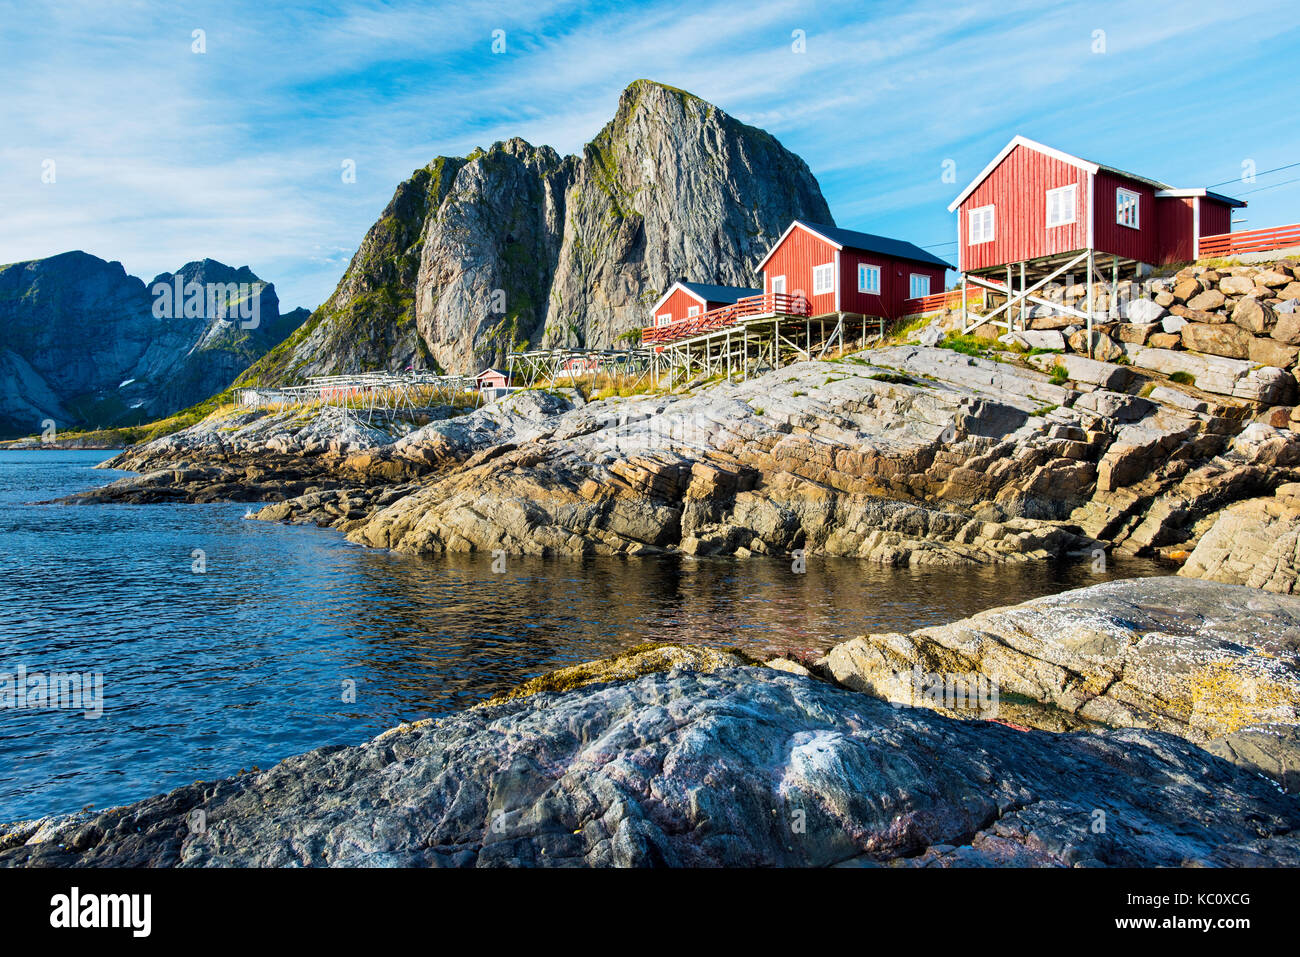 Rorbuer, traditional fisherman's cottages, in Reine, Norway - Stock Image